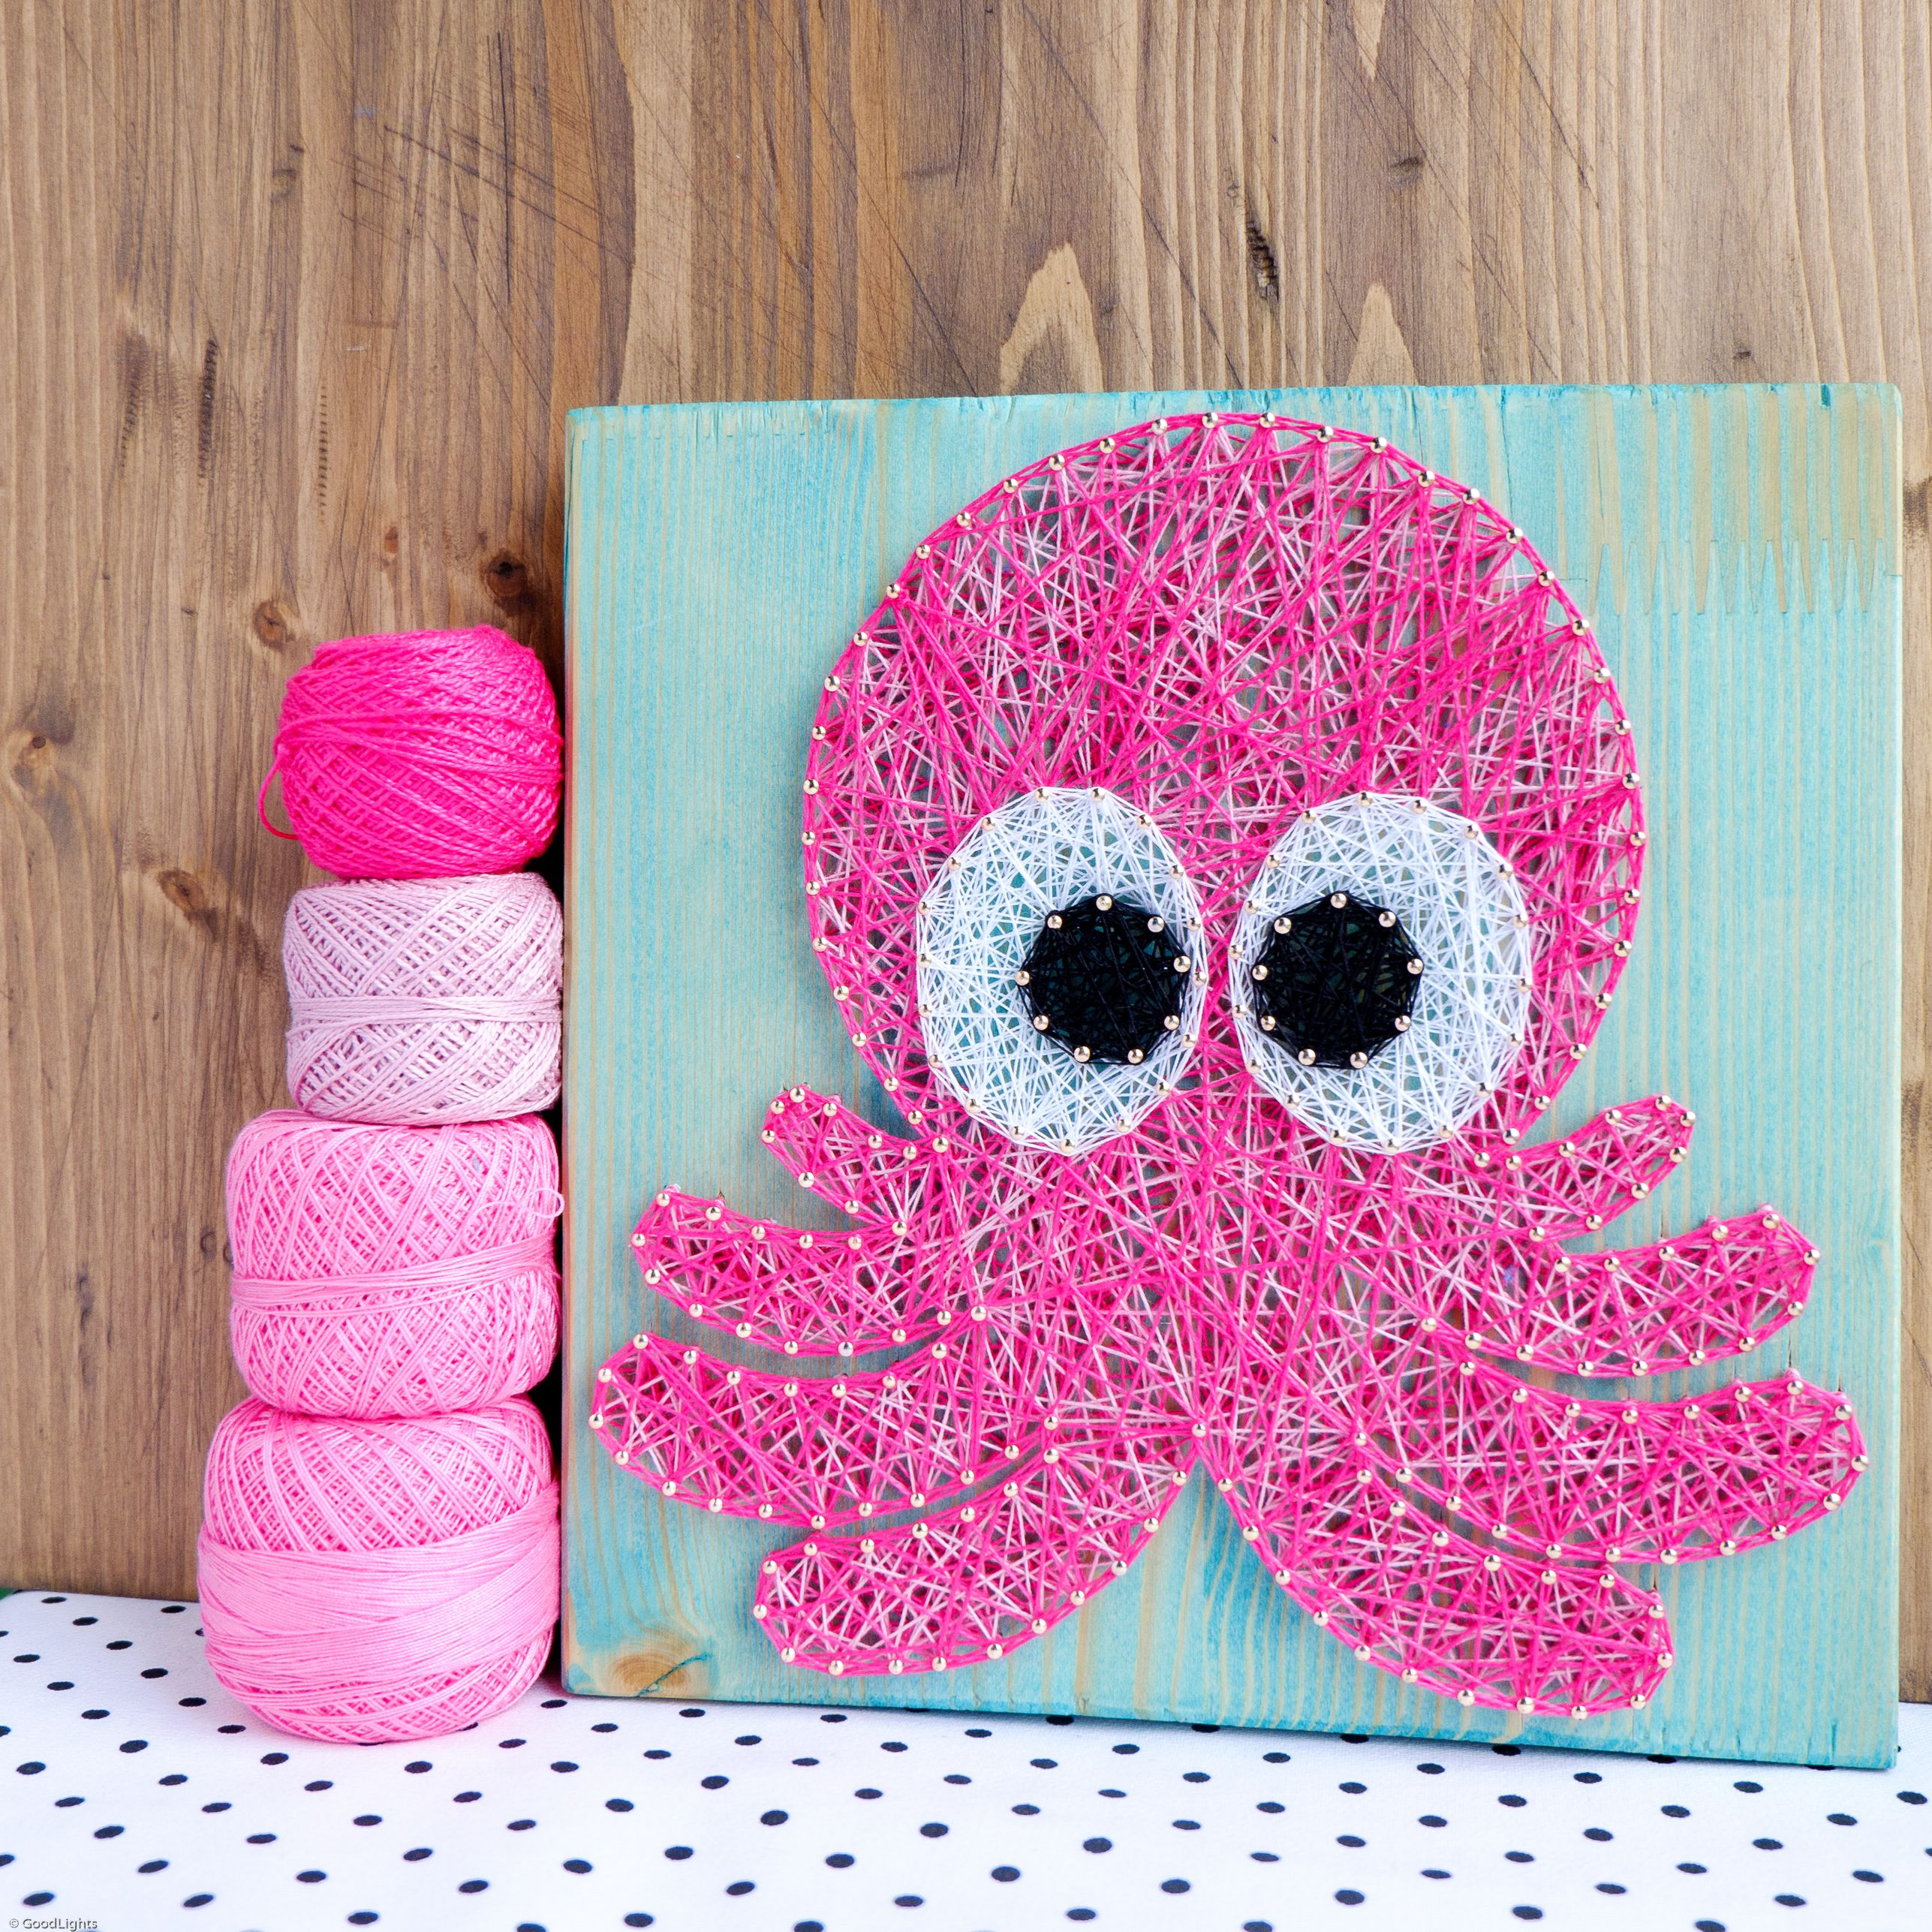 Octopus Wall Art Decoration, String Art D Cor Perfect For